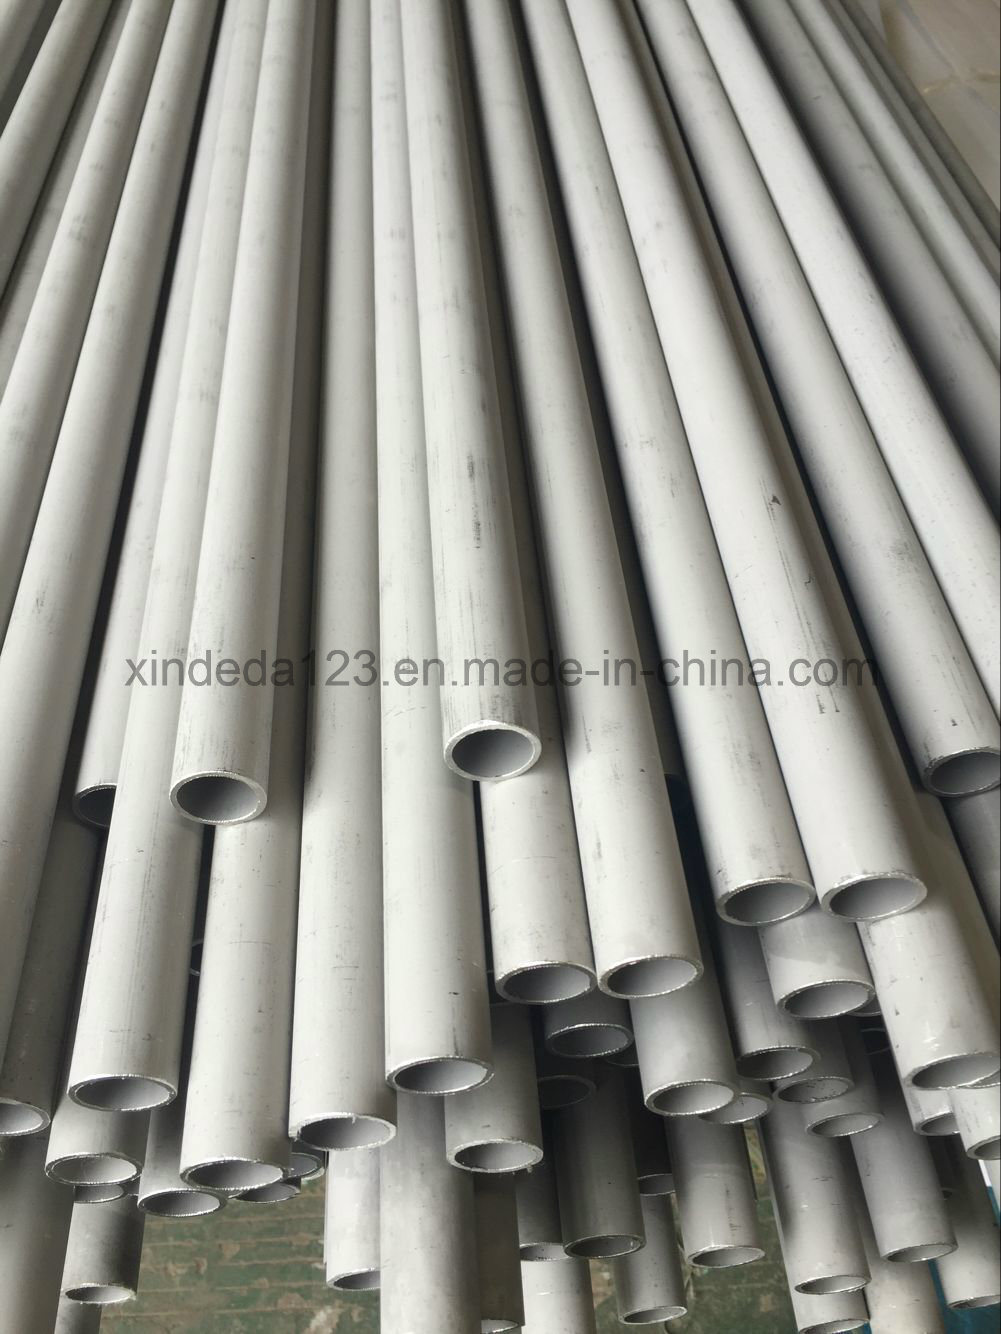 Stainless Steel Seamless Hydraulic Tube and Pipe